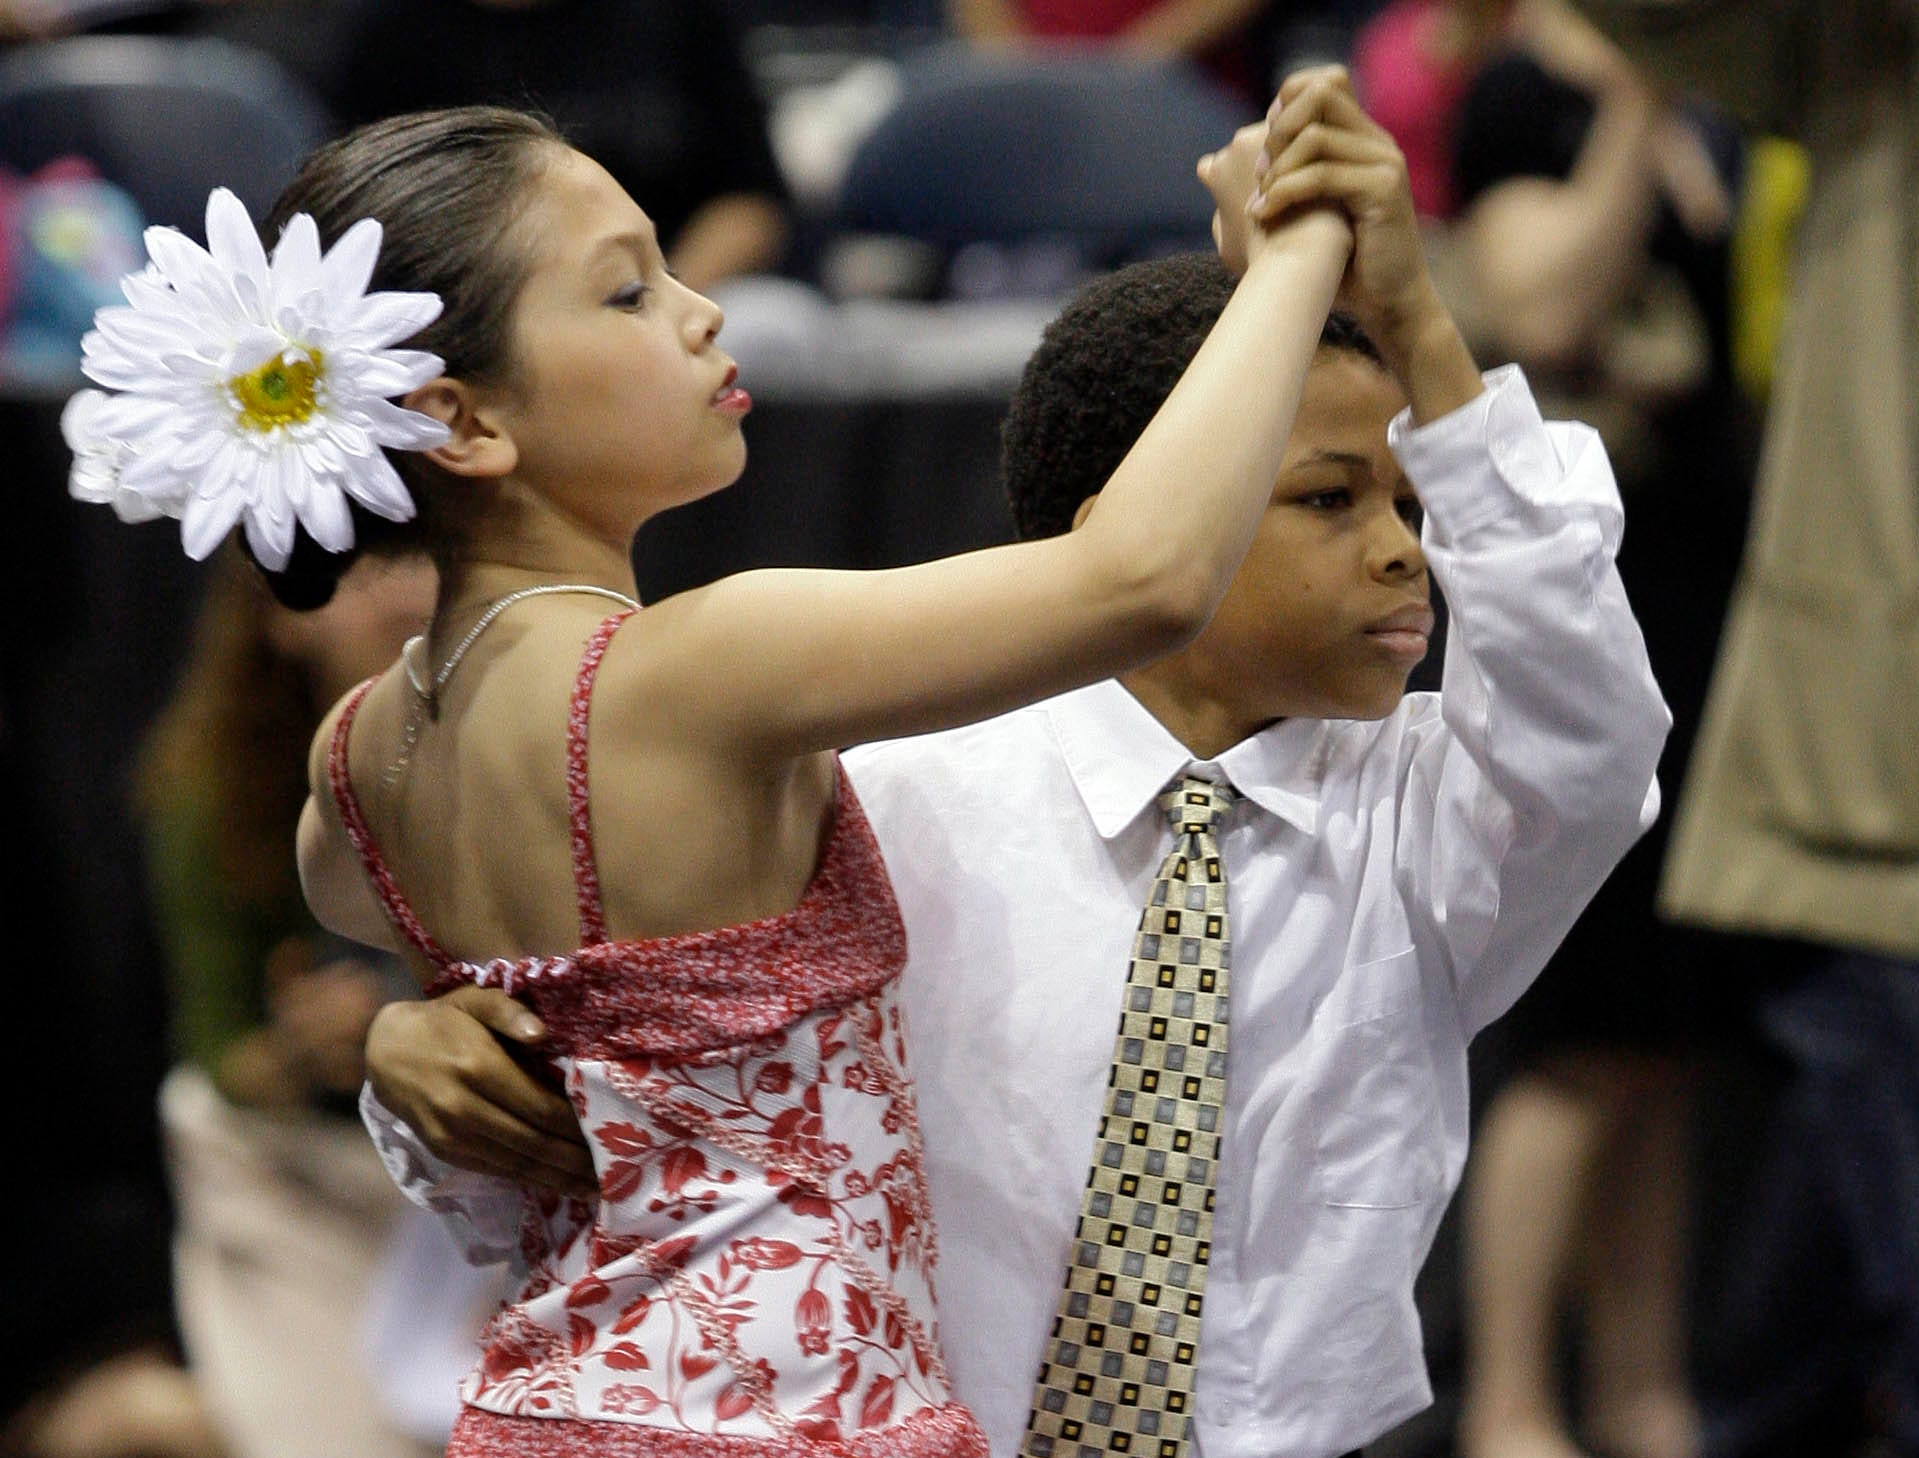 2009: Fifth graders Trevon Bland and Samantha Carter dance the tango during the Third Annual Mad Hot Ballroom and Tap Competition at the Bradley Center.